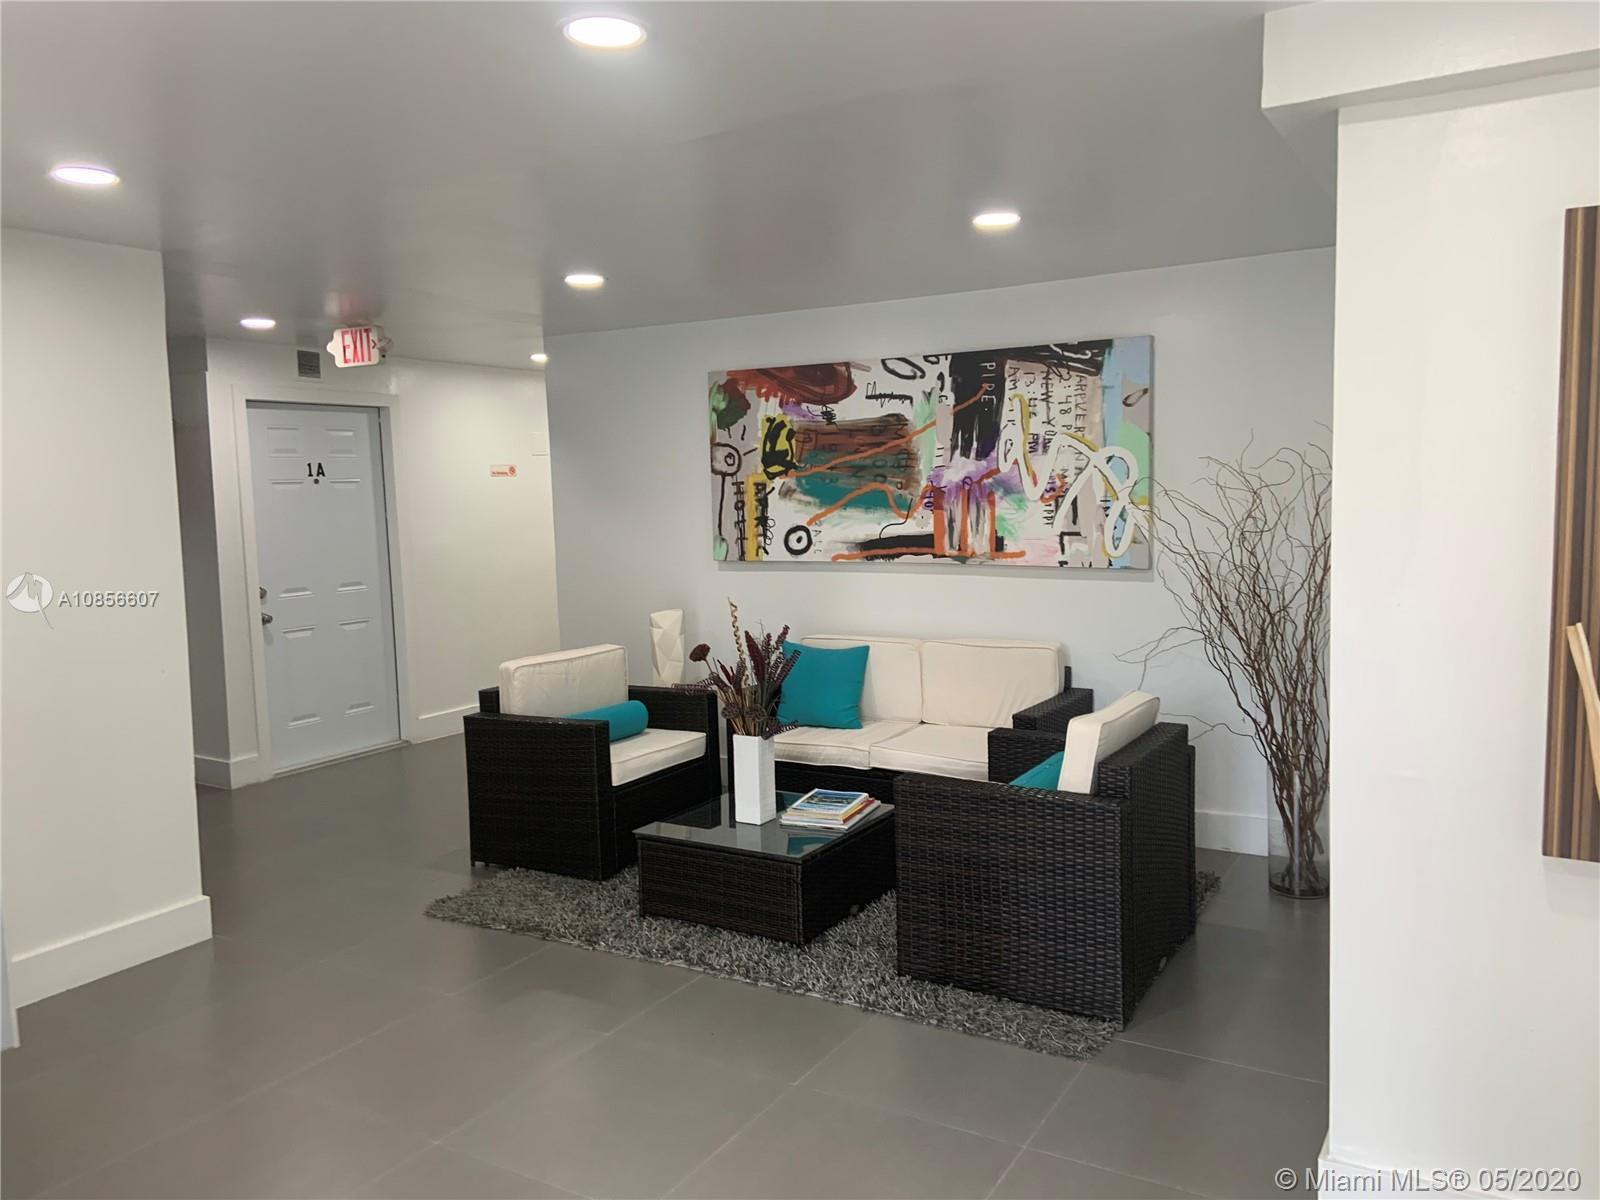 2 bedroom Two bath corner unit facing east  lots of windows and quite spacious, very bright and the